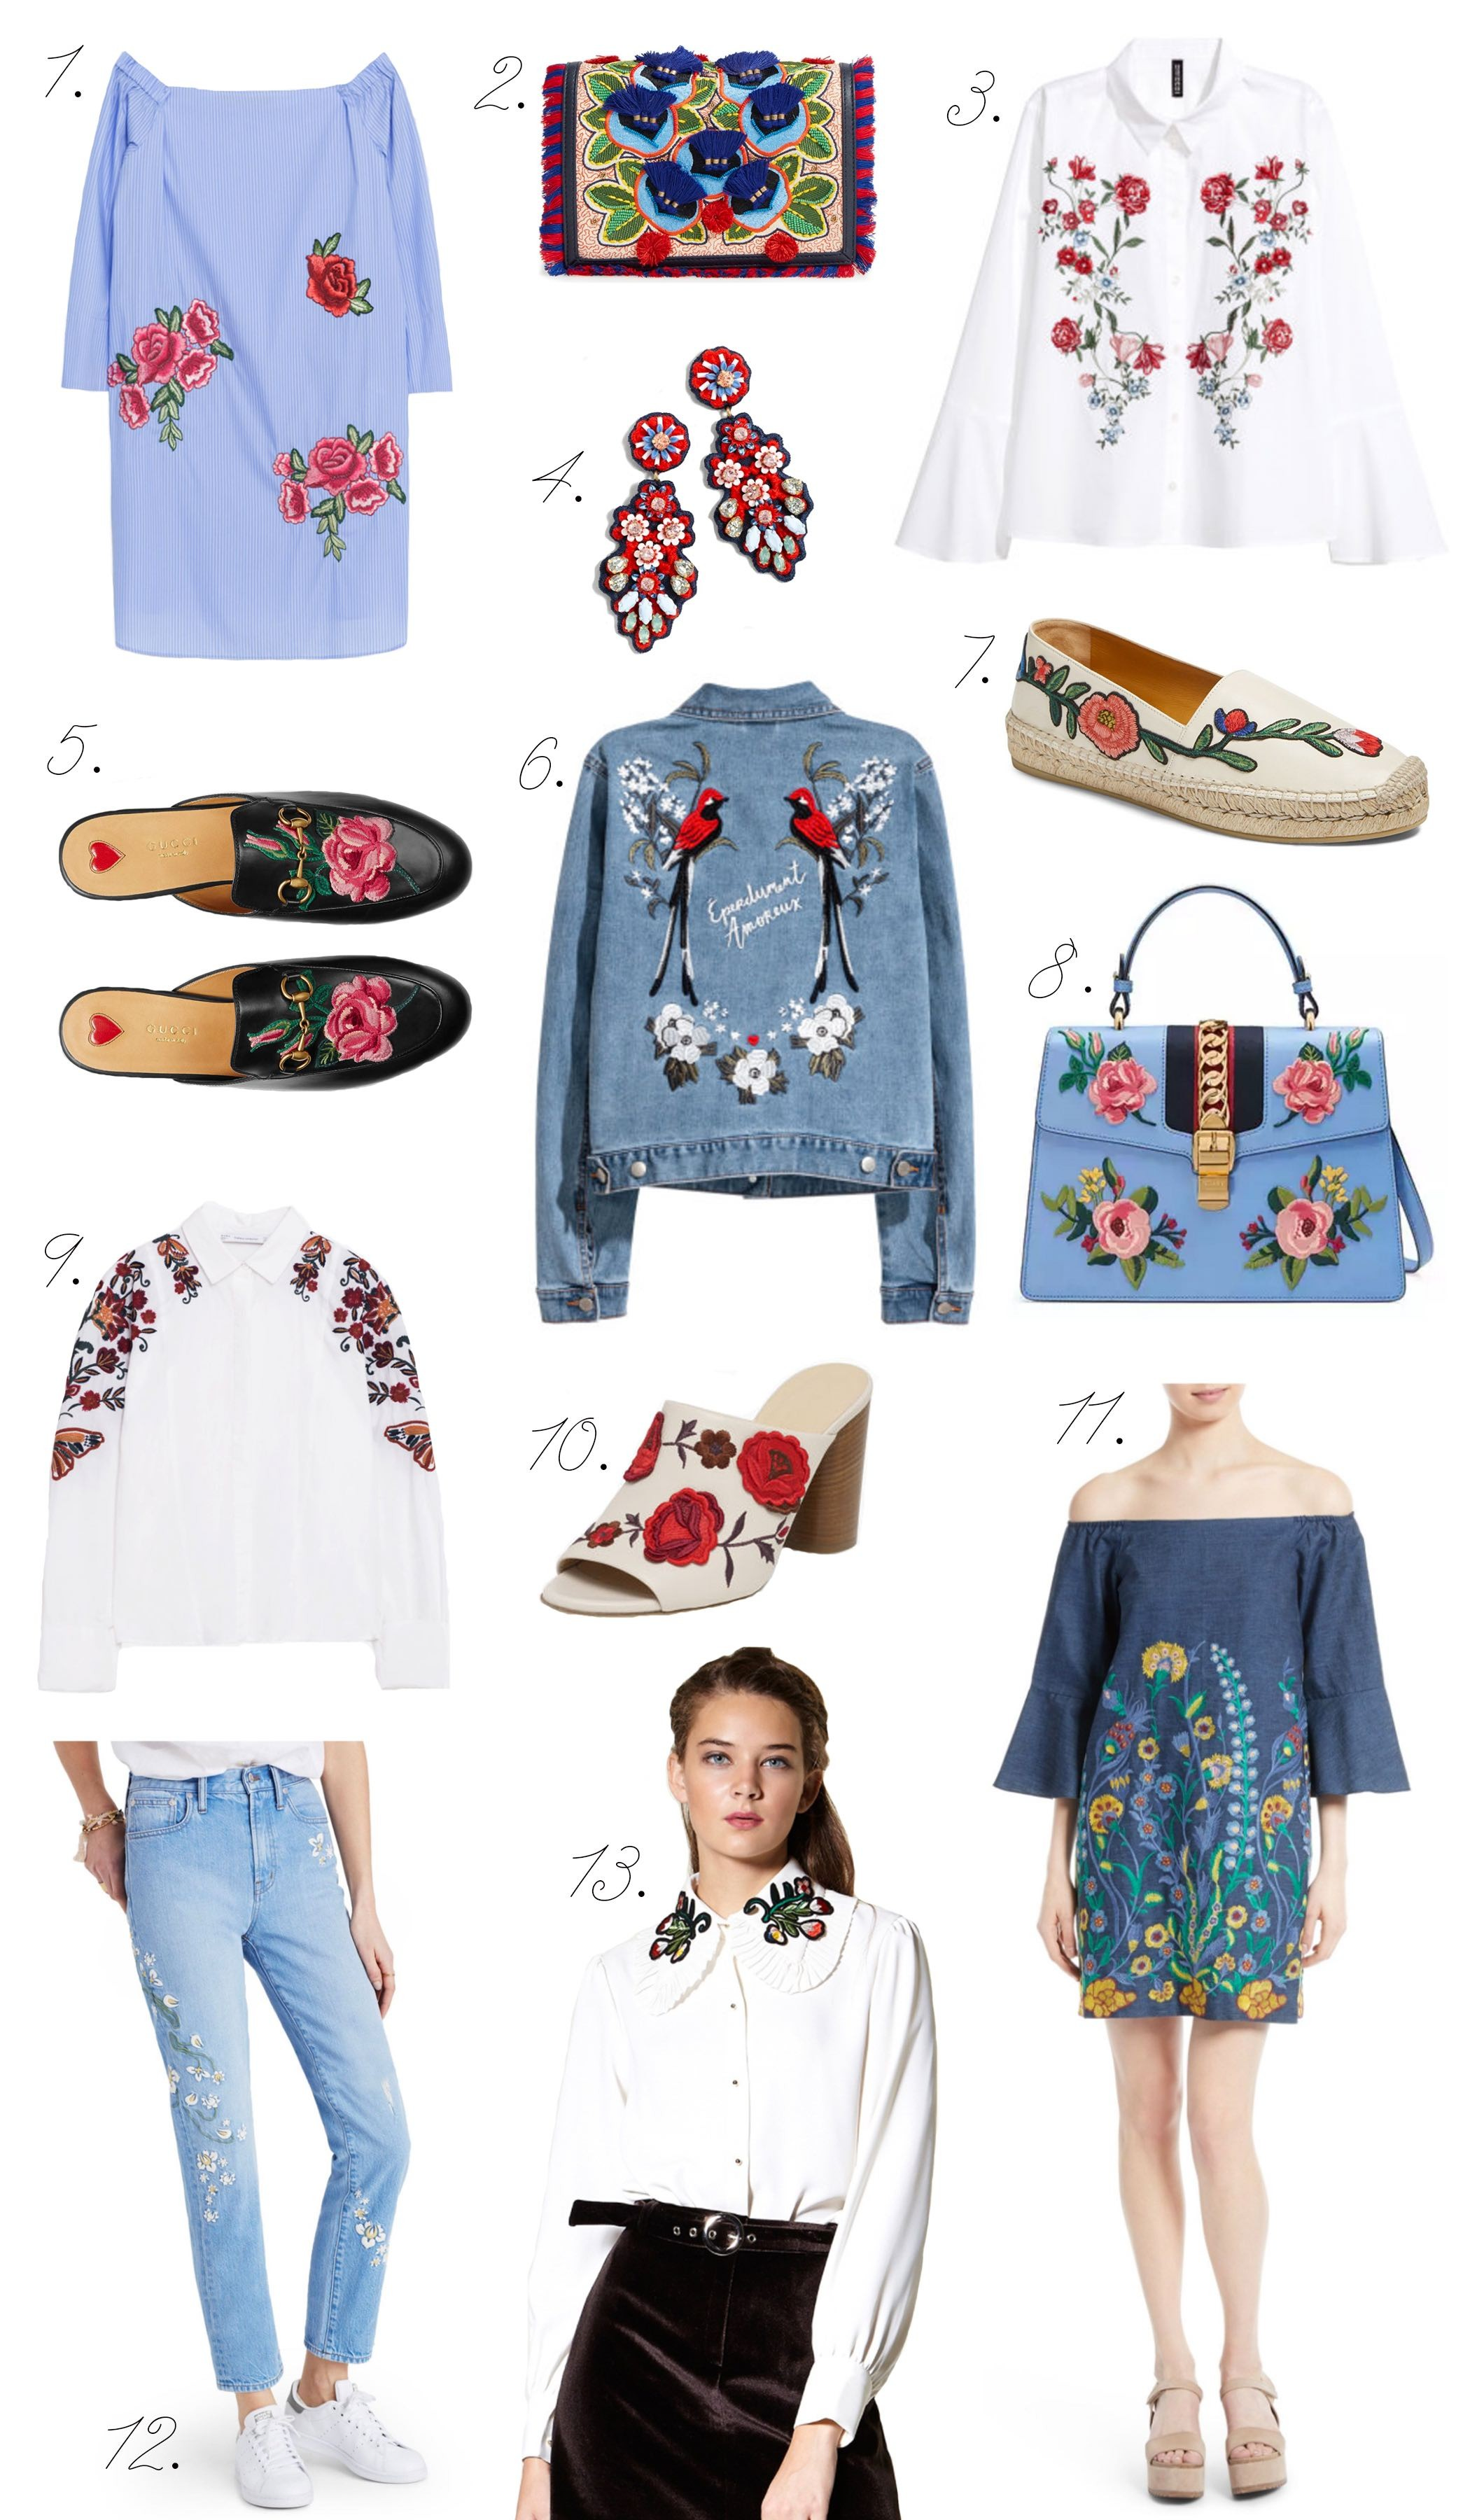 ebbdb6d2 J Crew Embroidered Crustal Earrings ($58.50) | 5. Gucci Princetown Loafers  ($750) | 6. H&M Embroidered Denim Jacket ($59.99) | 7.